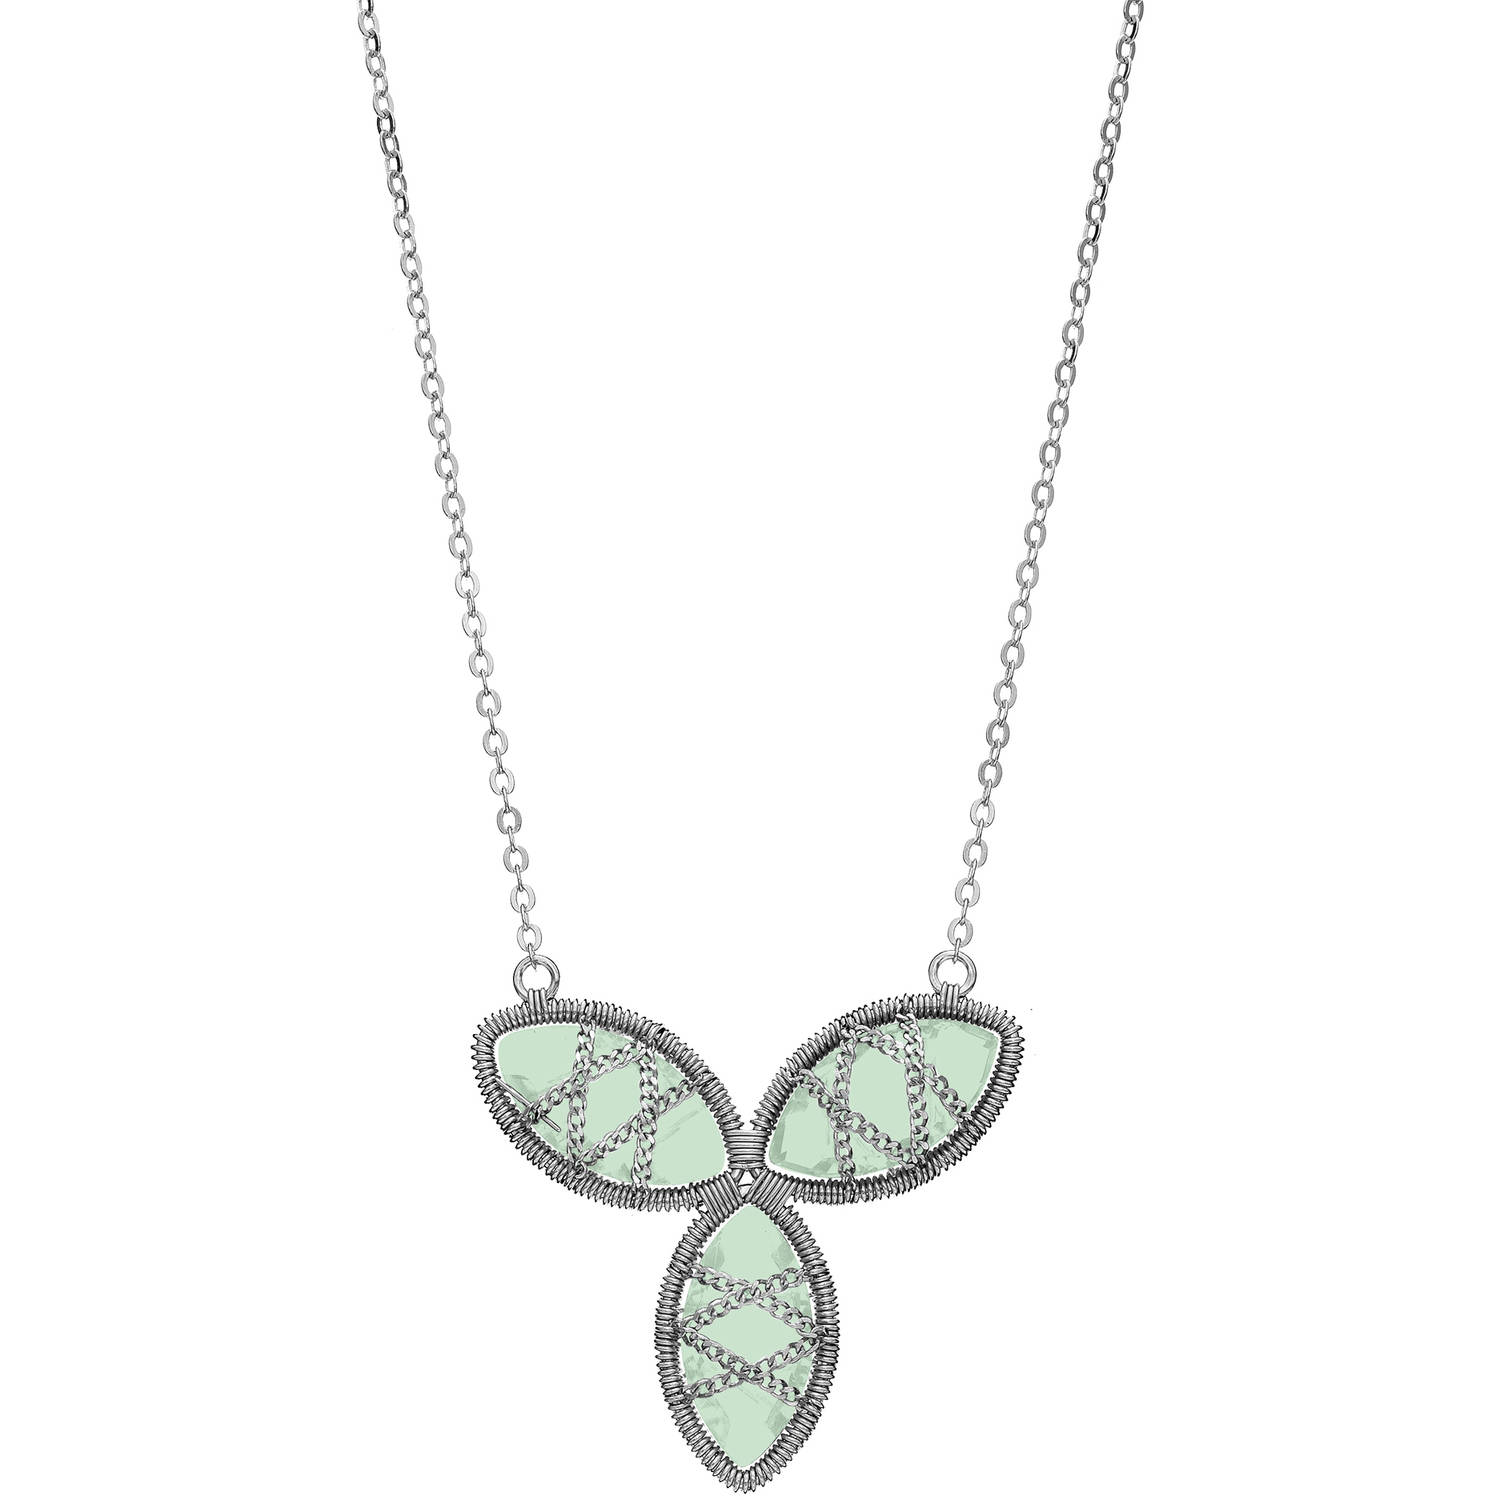 5th & Main Sterling Silver Hand-Wrapped Triple Floral Chalcedony Stone Necklace by Generic